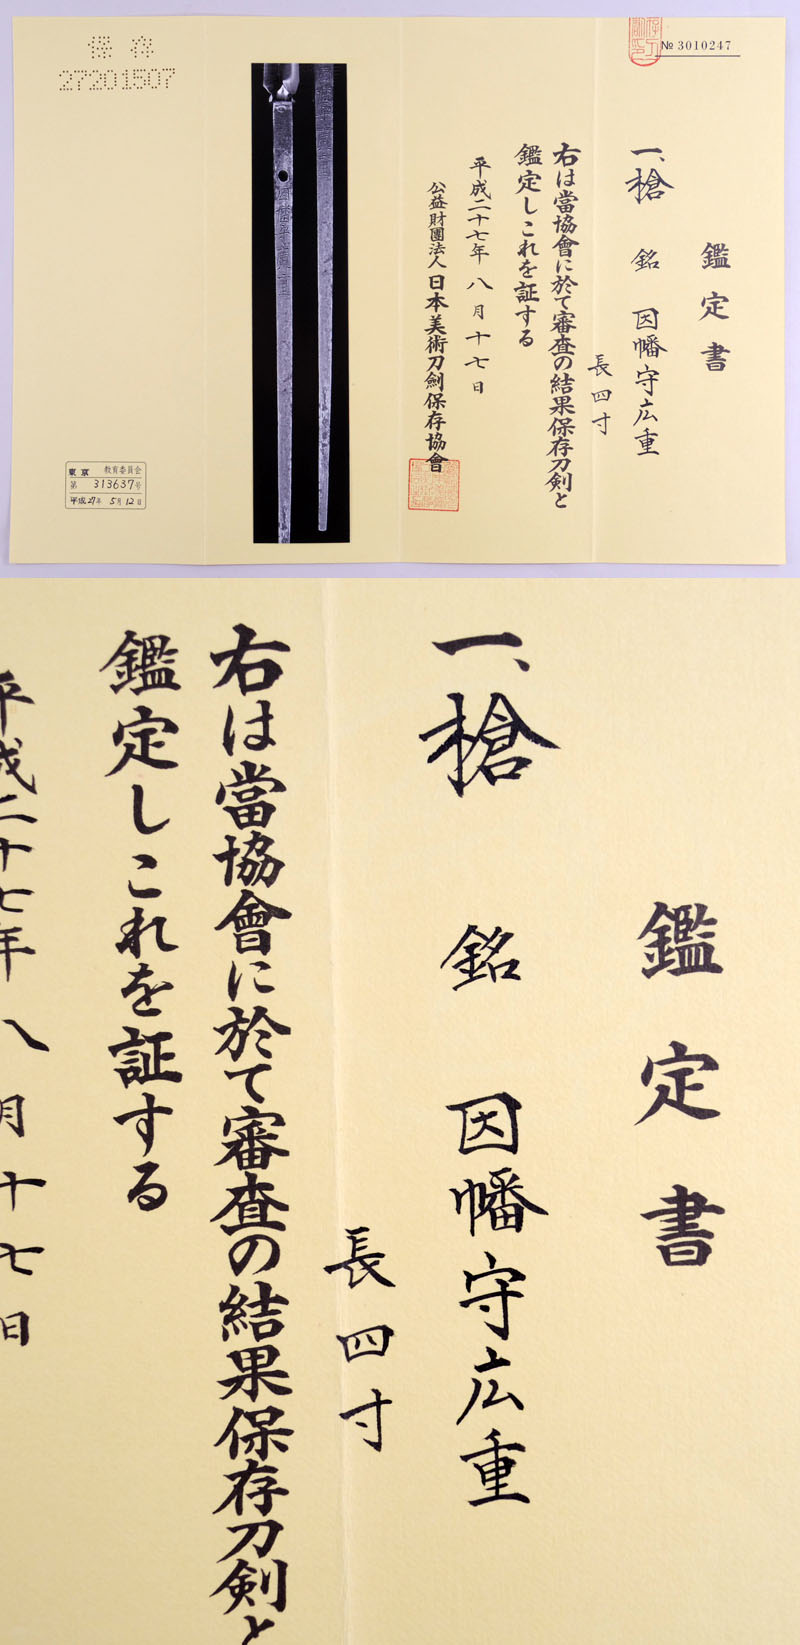 因幡守広重 Picture of Certificate